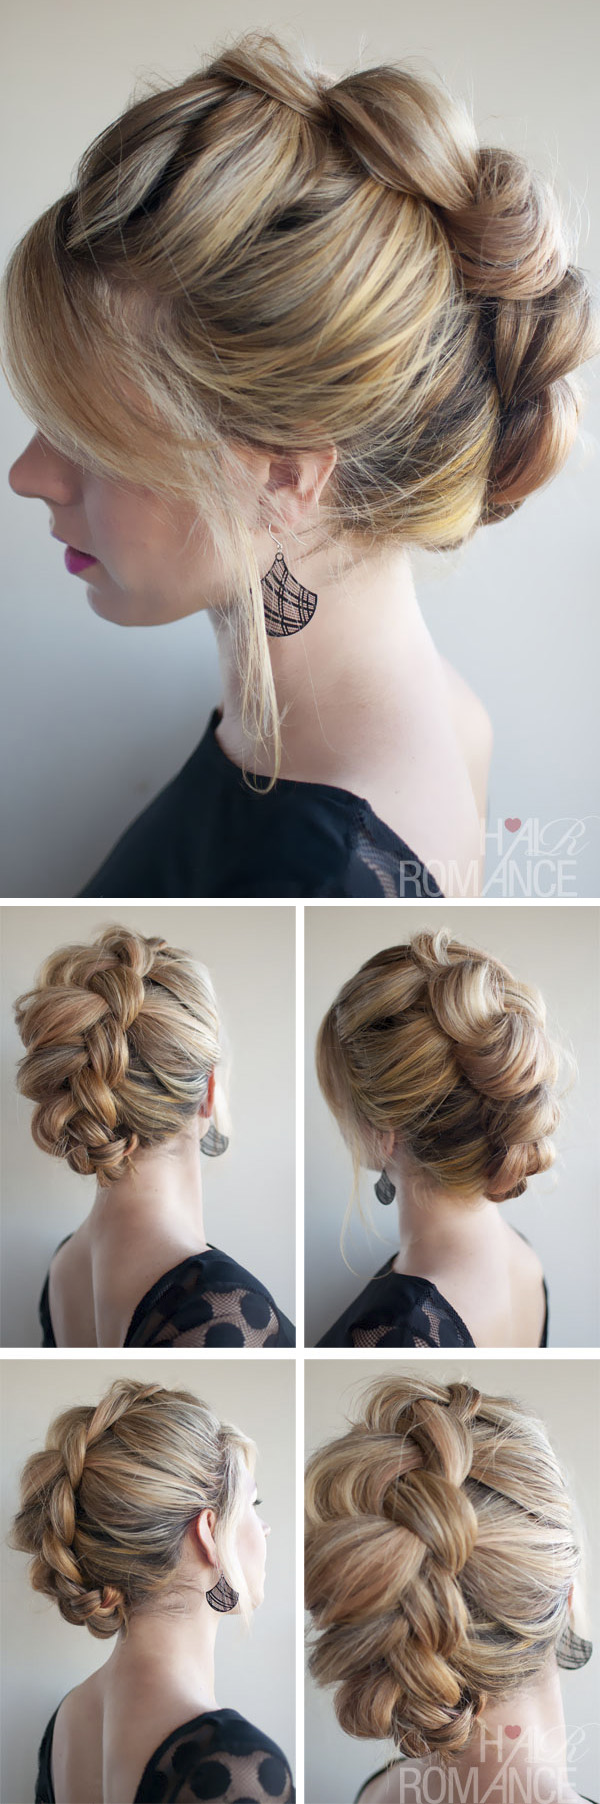 A Collection of 20 + Chic Hairstyles for All Occasions --Elegant Braid Hawk hairstyle